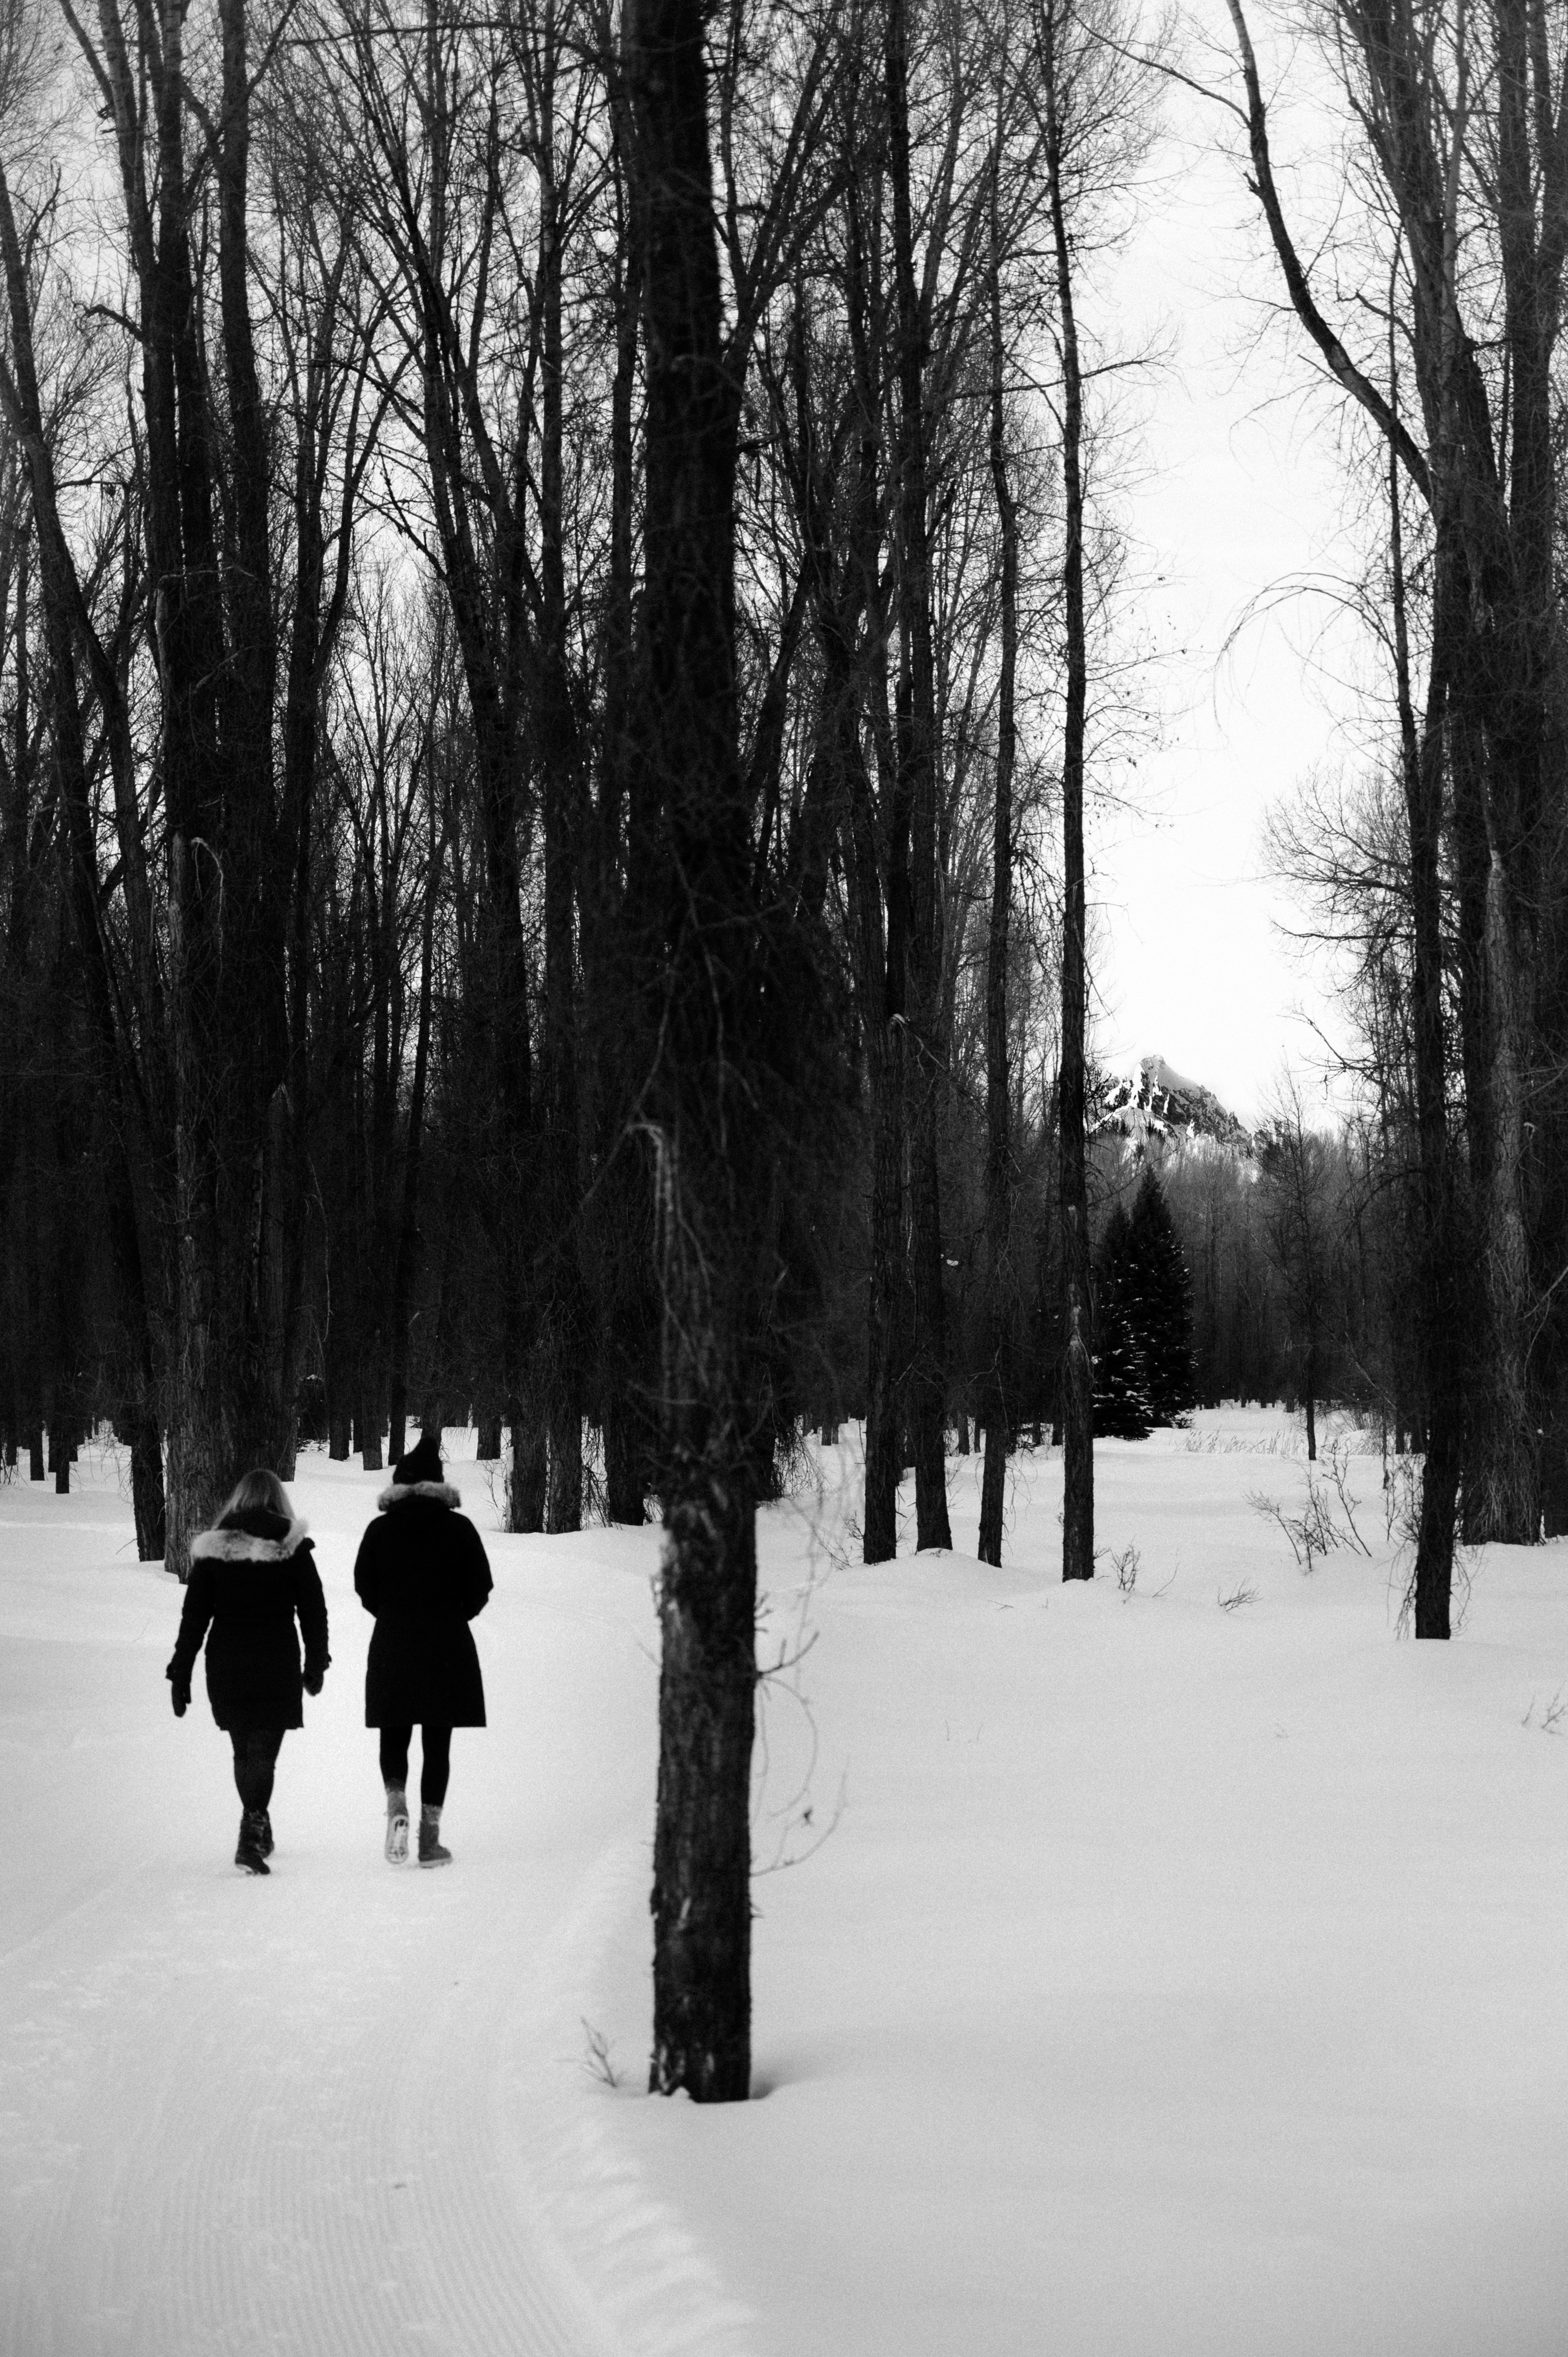 Elise and Mckaye walking in the snow